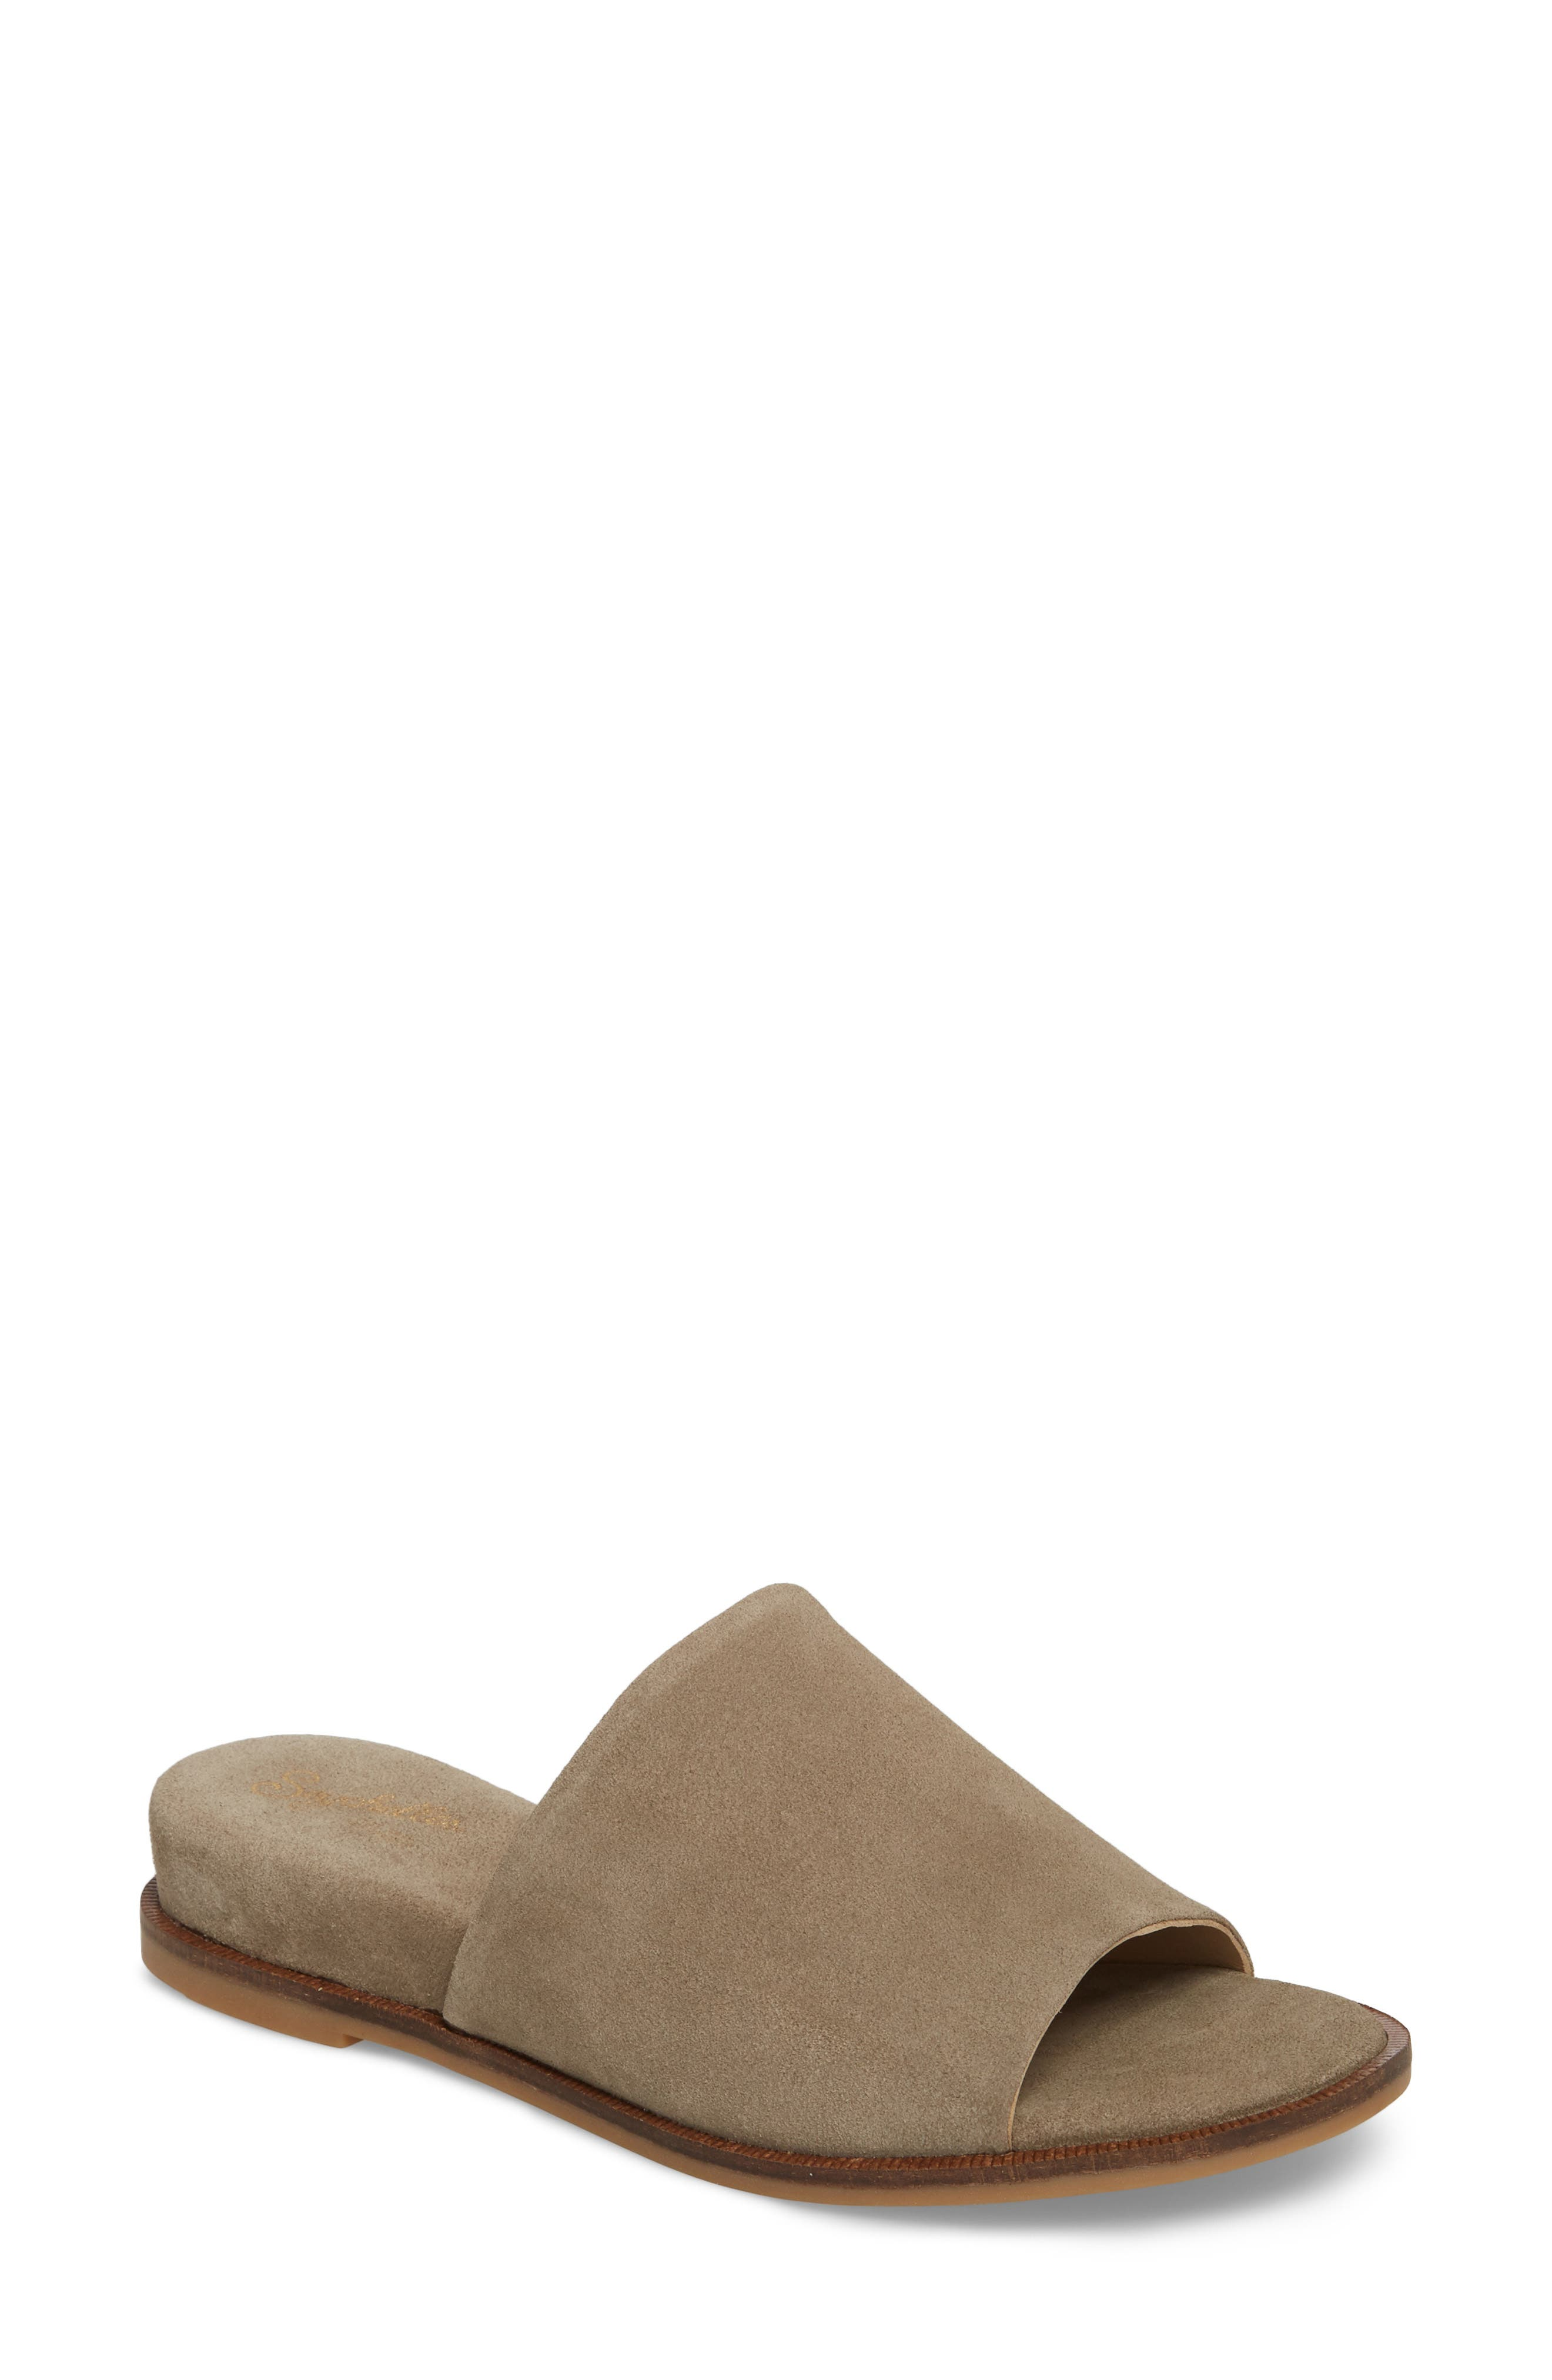 Relaxing Wedge Slide Sandal,                             Main thumbnail 1, color,                             Taupe Leather